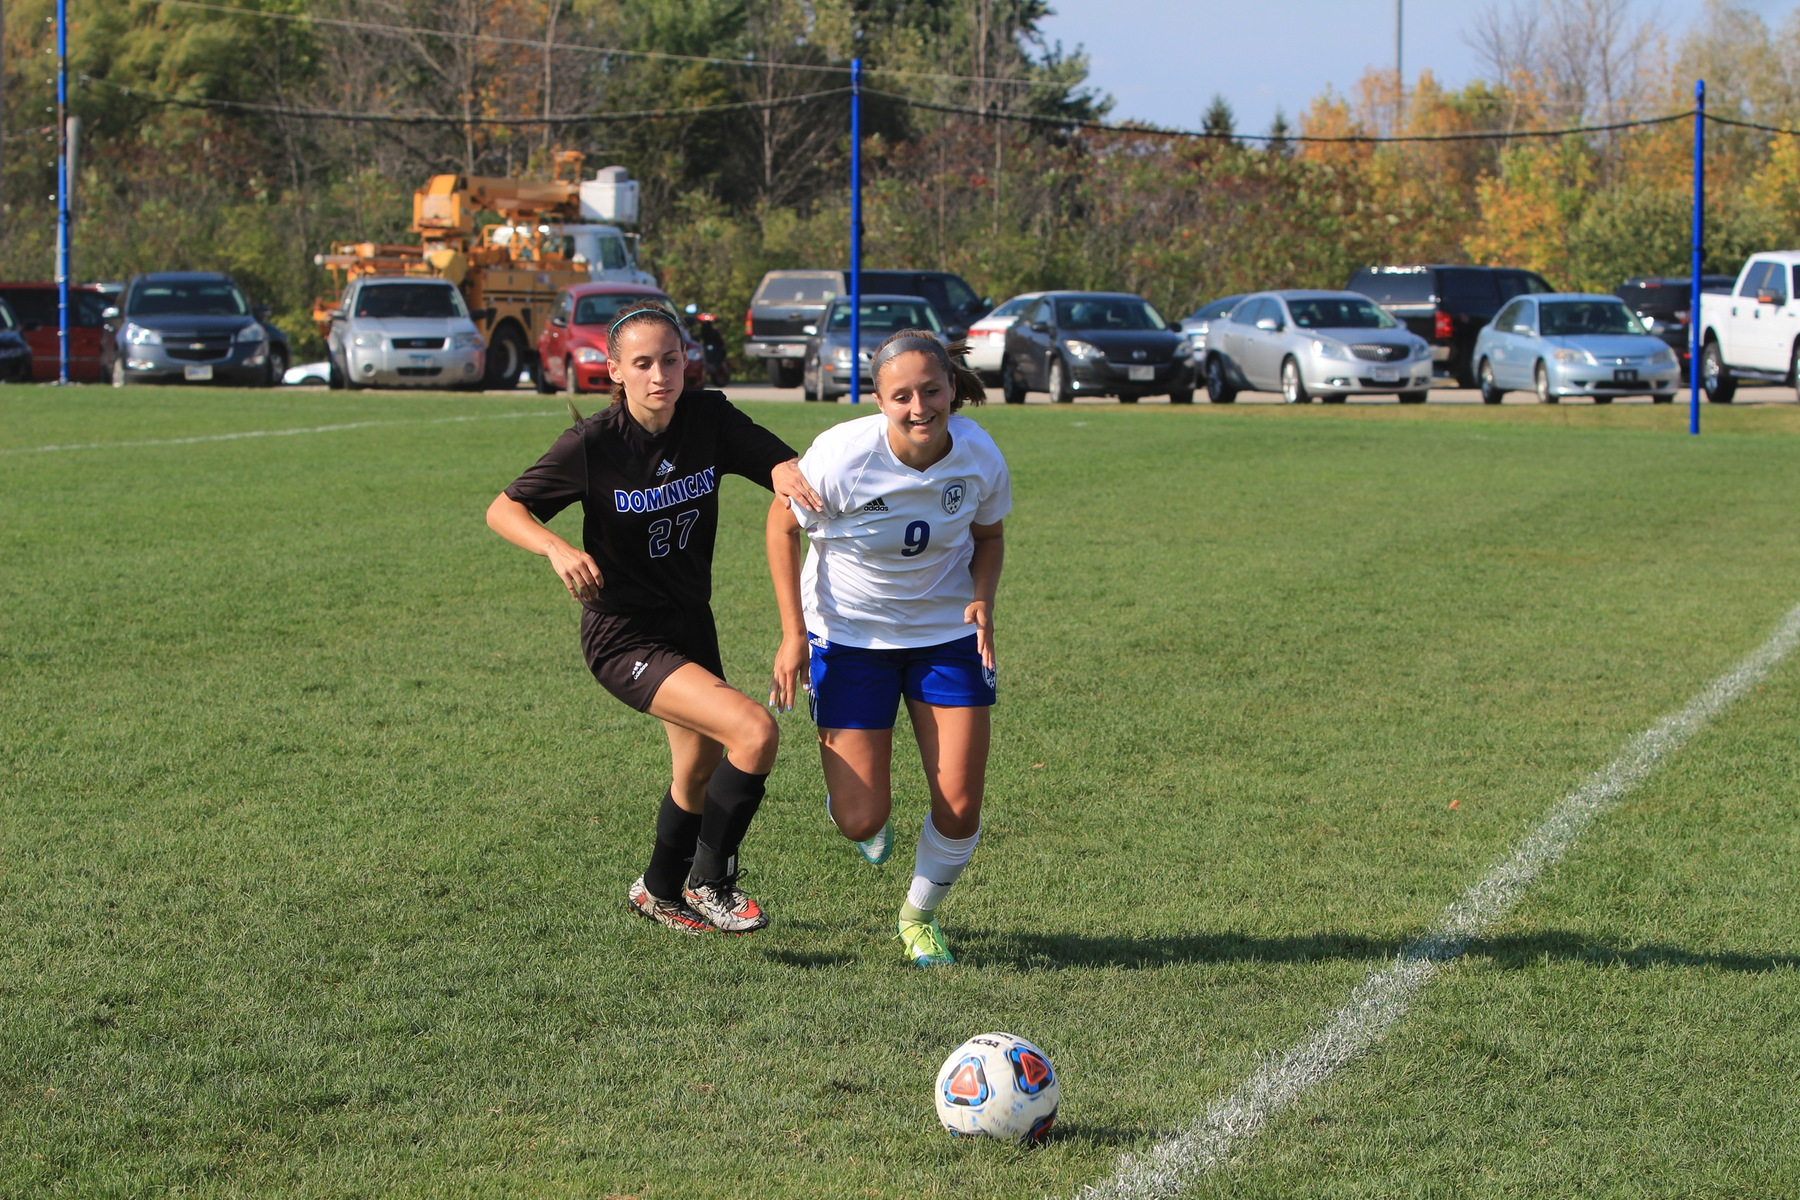 Alicia Balken tries to keep the ball in.